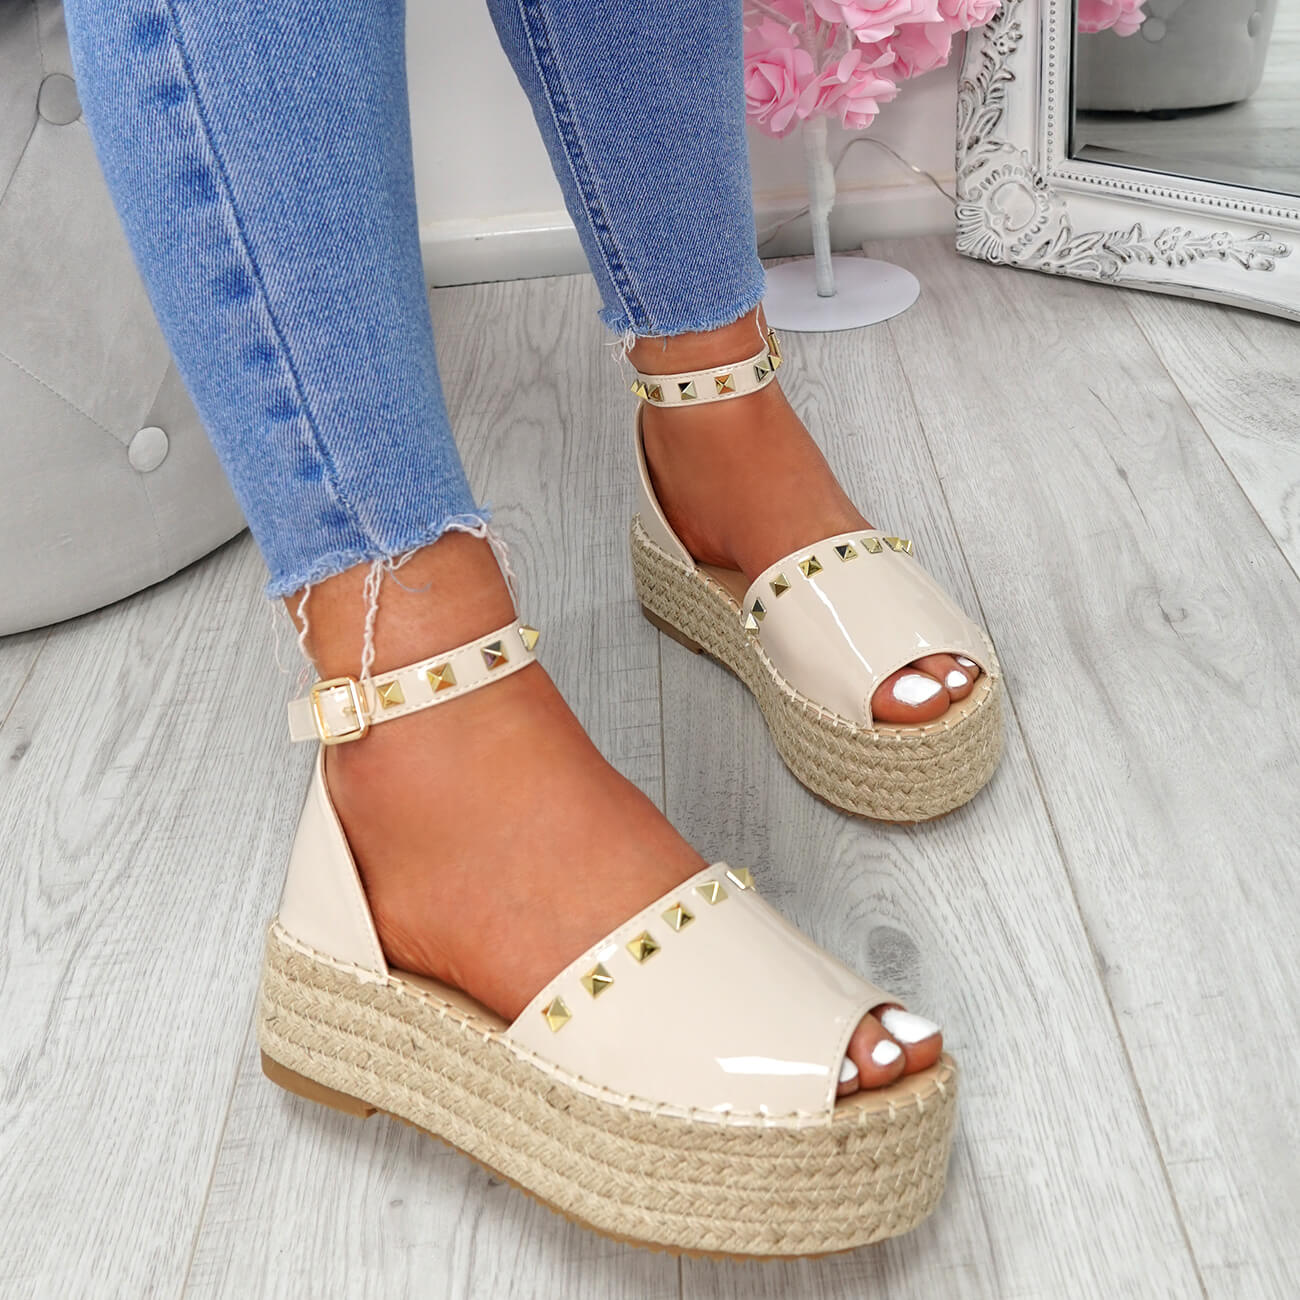 WOMENS-LADIES-ROCK-STUDS-ESPADRILLE-FLATFORM-PLATFORM-SANDALS-CASUAL-SHOES-SIZE thumbnail 17